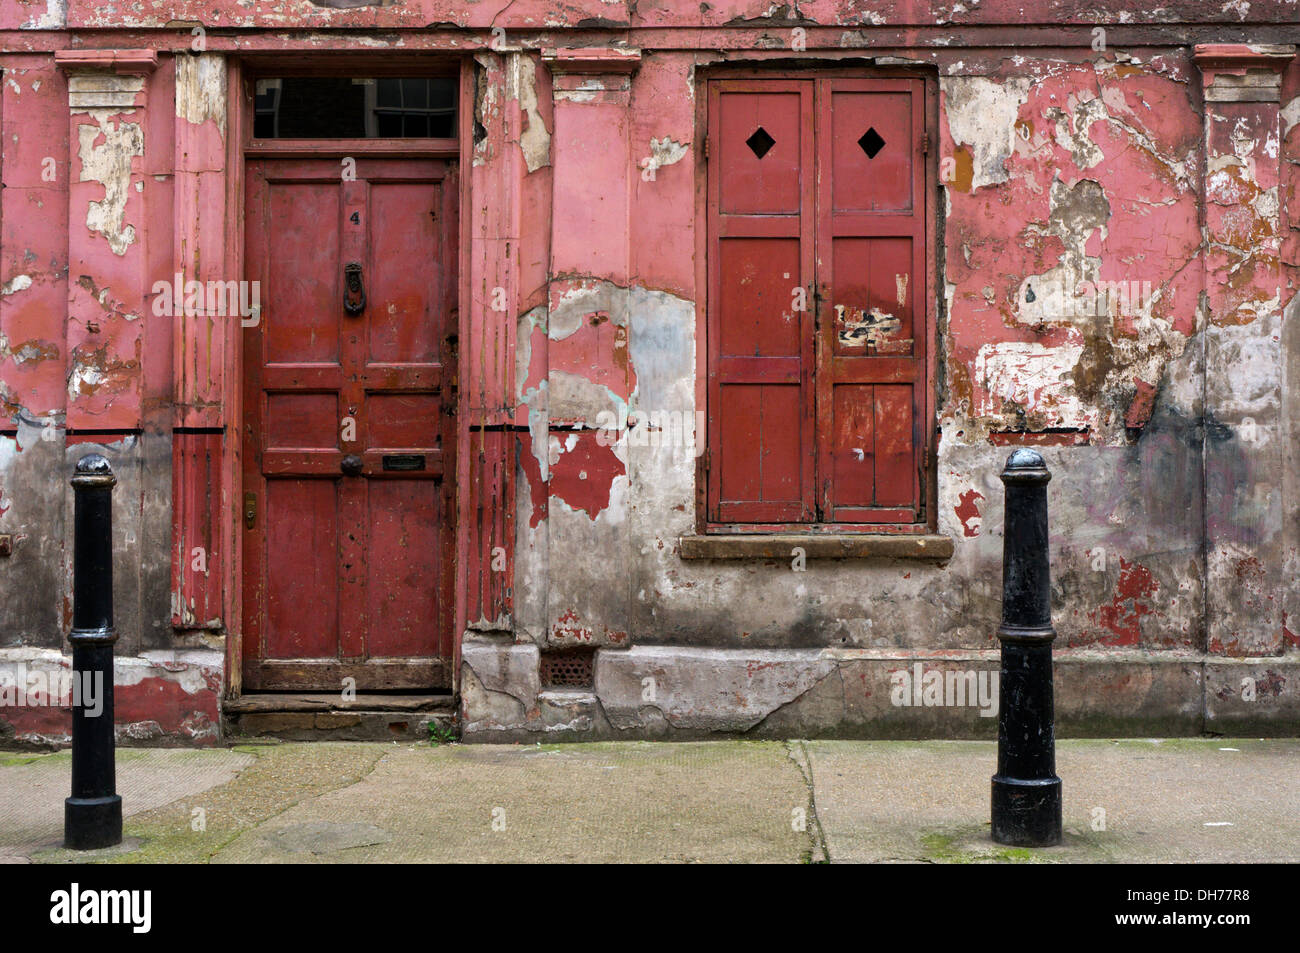 The peeling and dilapidated looking exterior of a house in Princelet Street, Spitalfields. - Stock Image